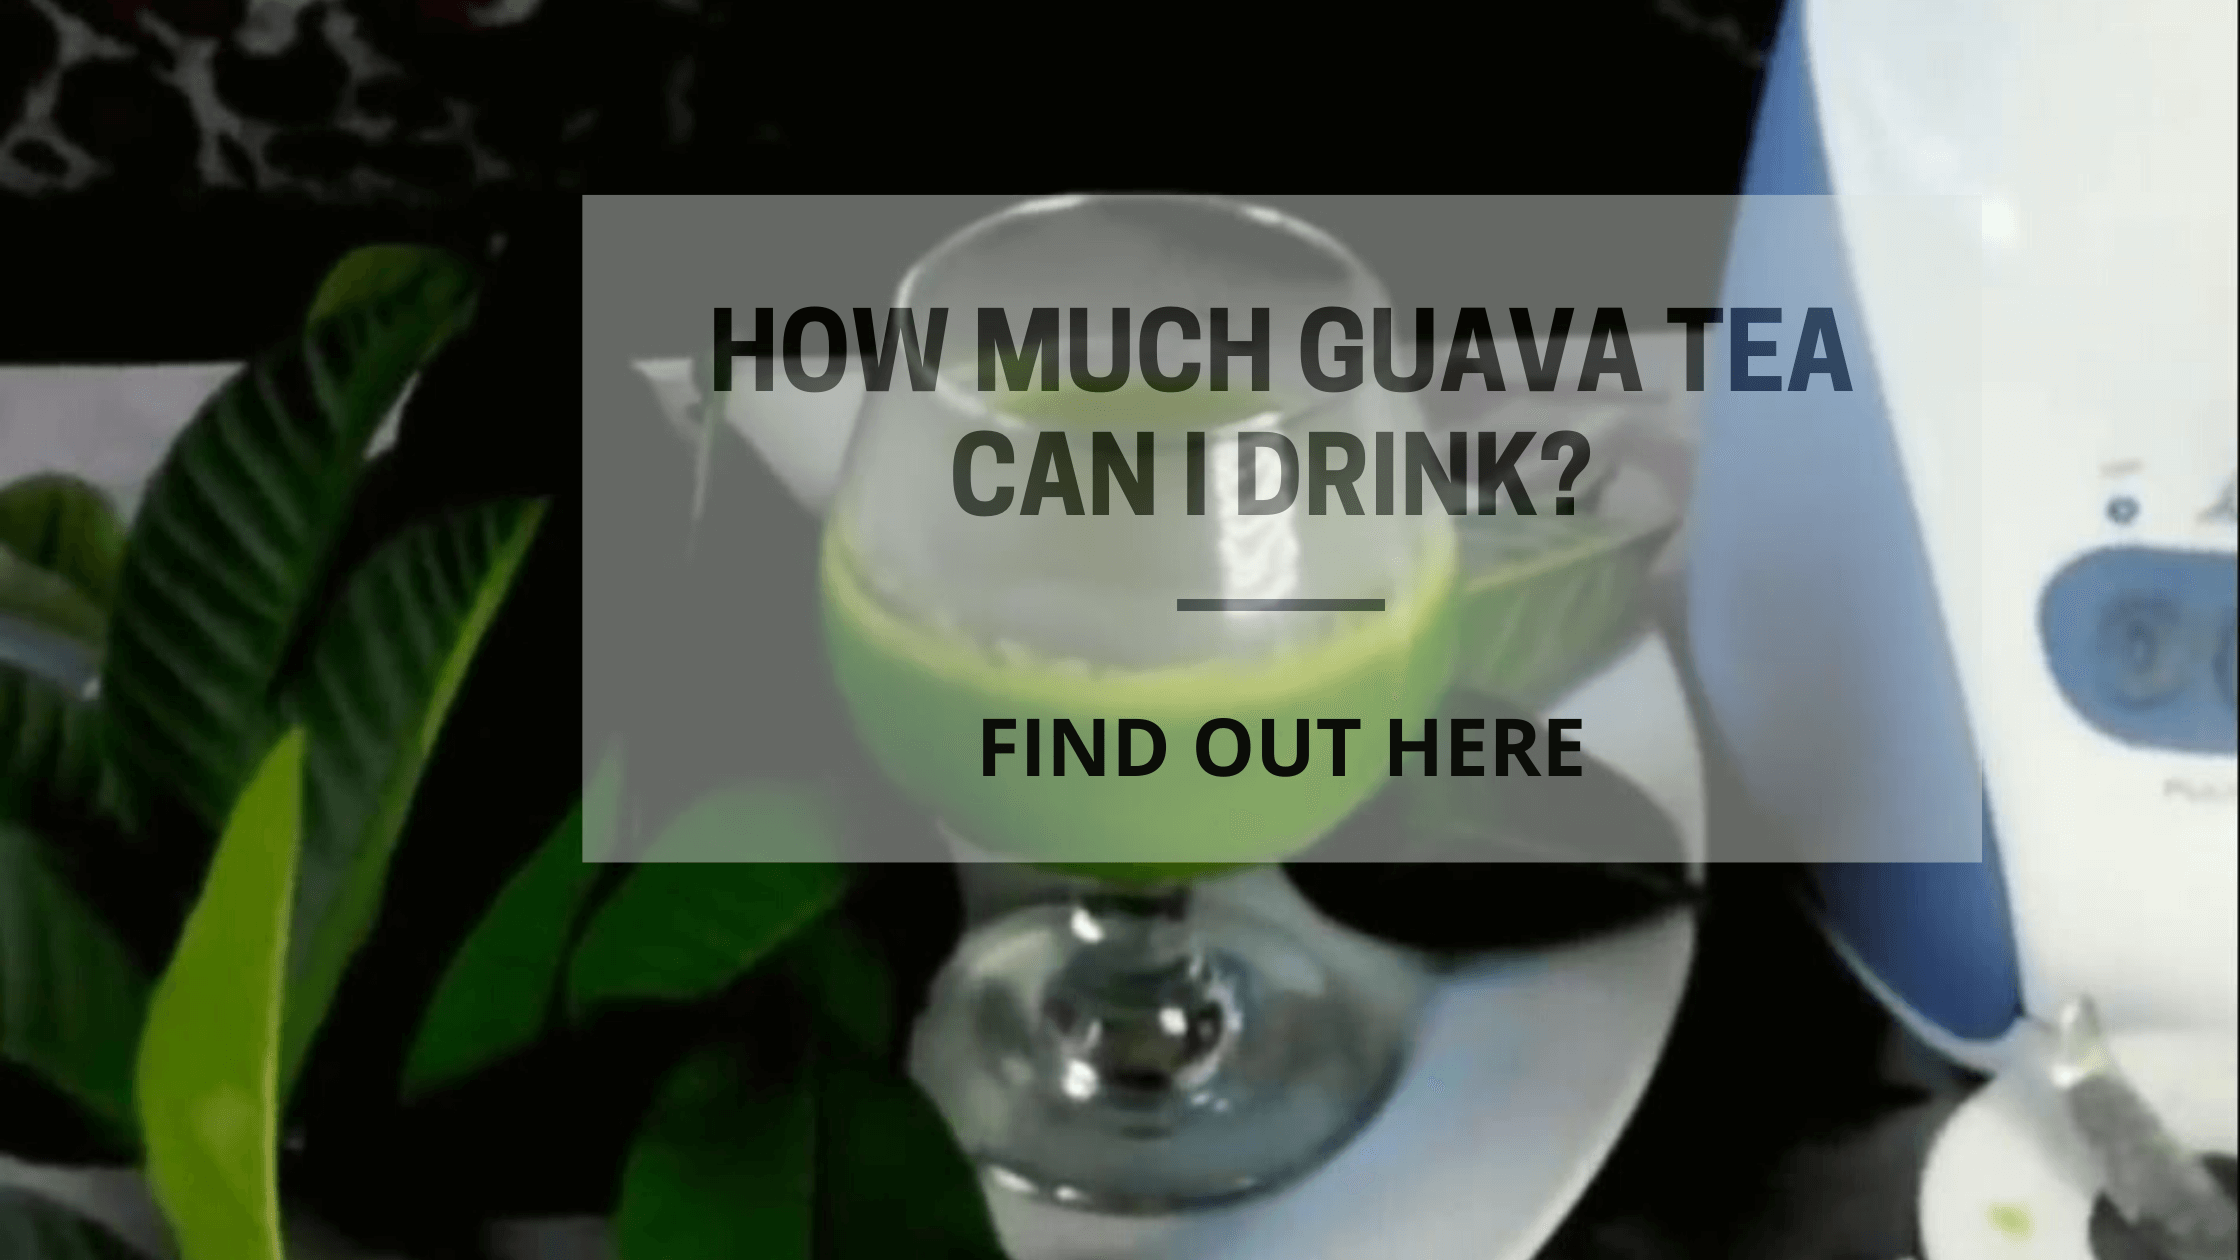 How much guava tea can i drink (1)